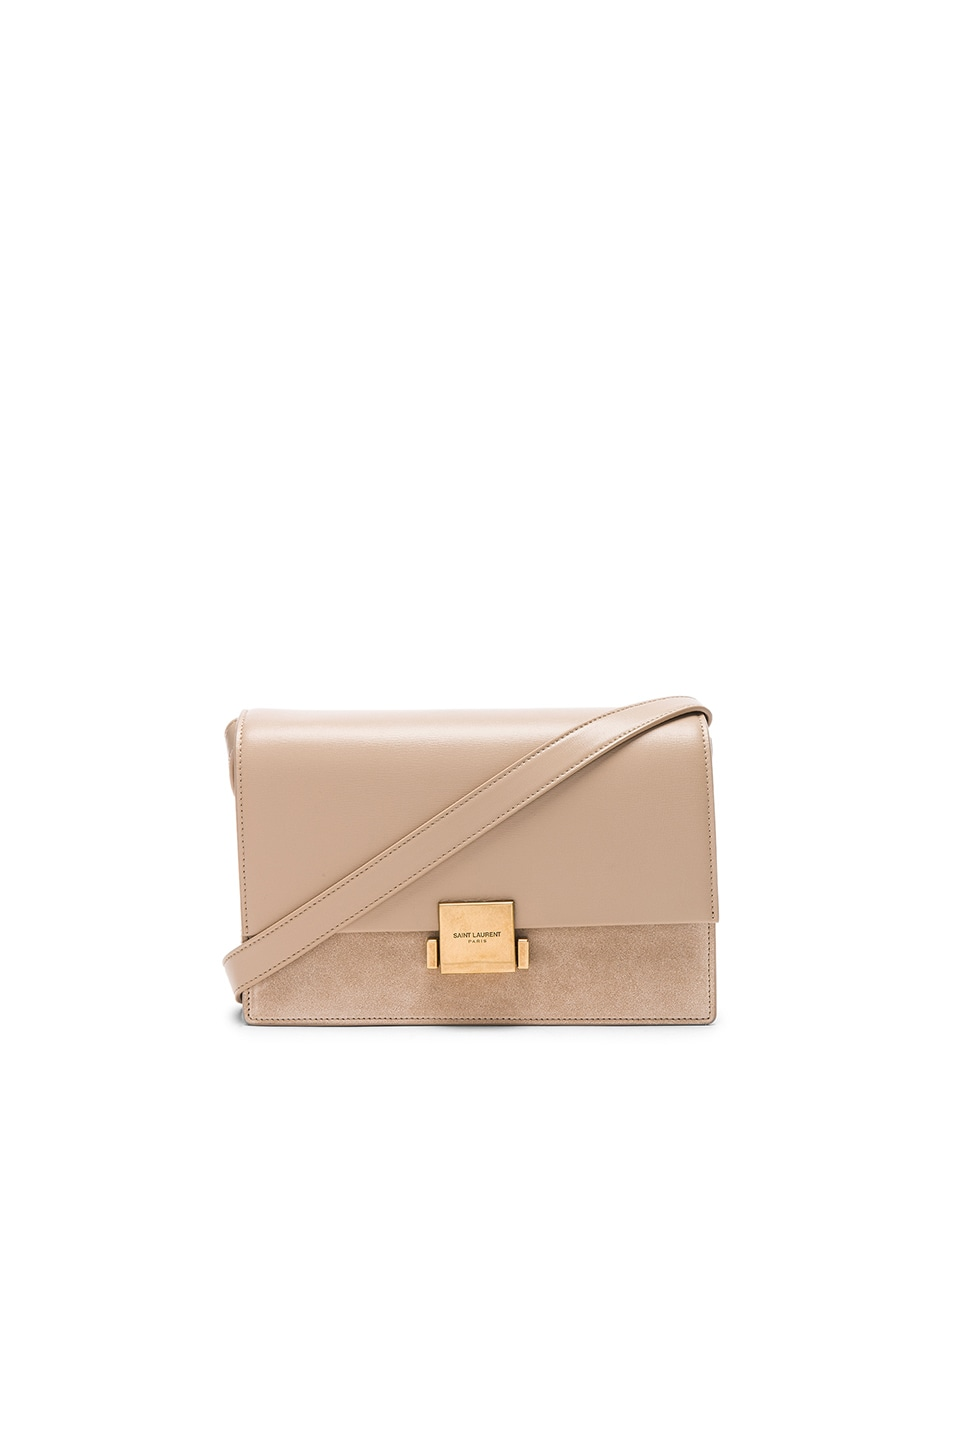 Image 1 of Saint Laurent Medium Bellechasse Satchel in Dark Beige